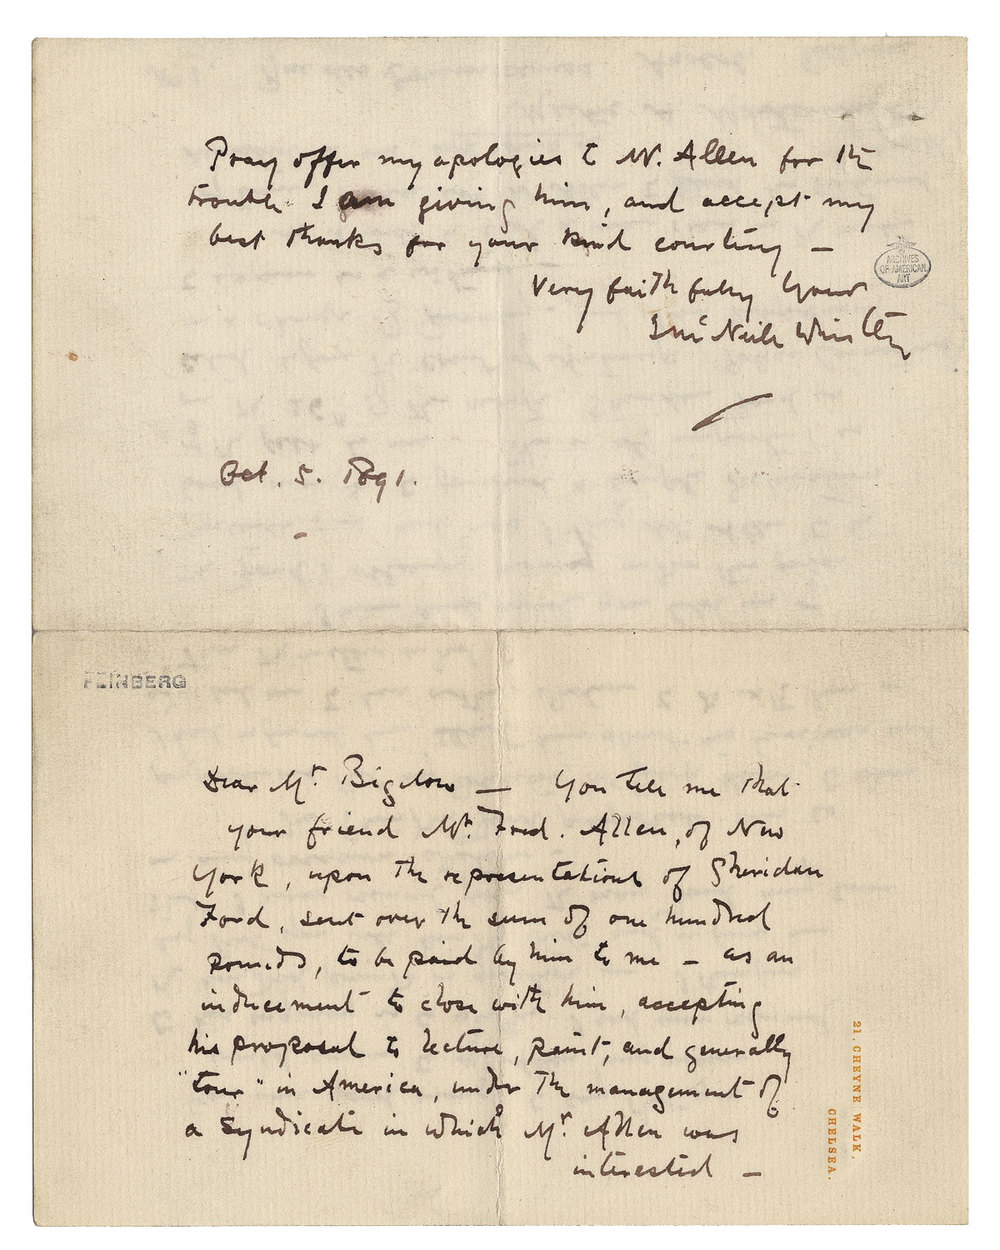 James McNeill Whistler (153) letter to Charles Bowen Bigelow, October 5, 1891